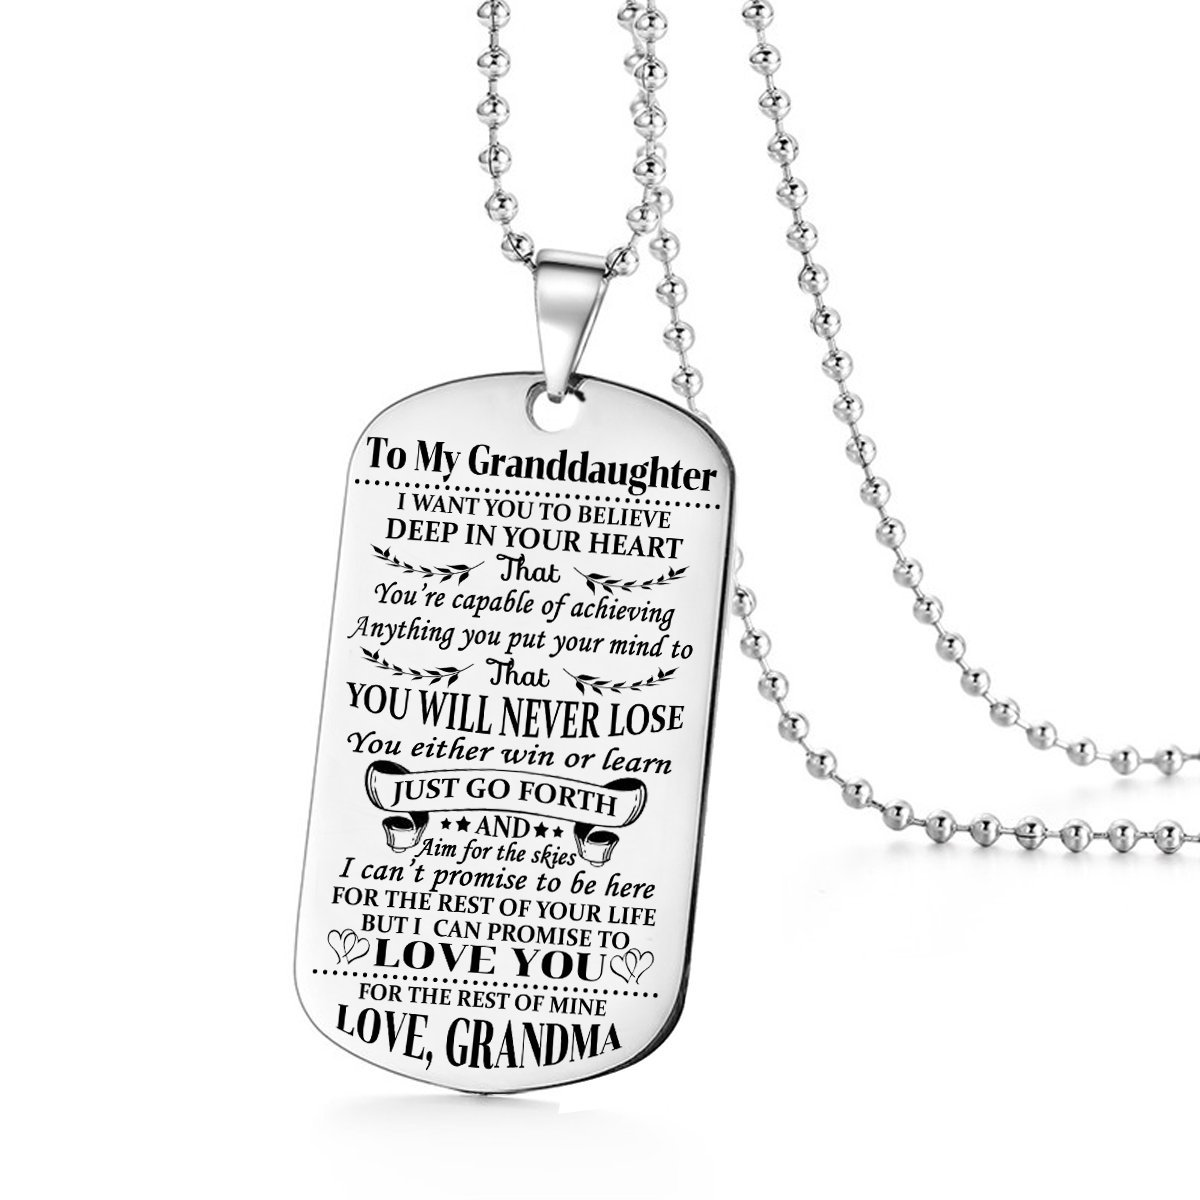 Stashix To My Granddaughter I Want You To Believe Love Grandma Dog Tags Necklace Birthday Gift Jewelry Graduation Military Personalized